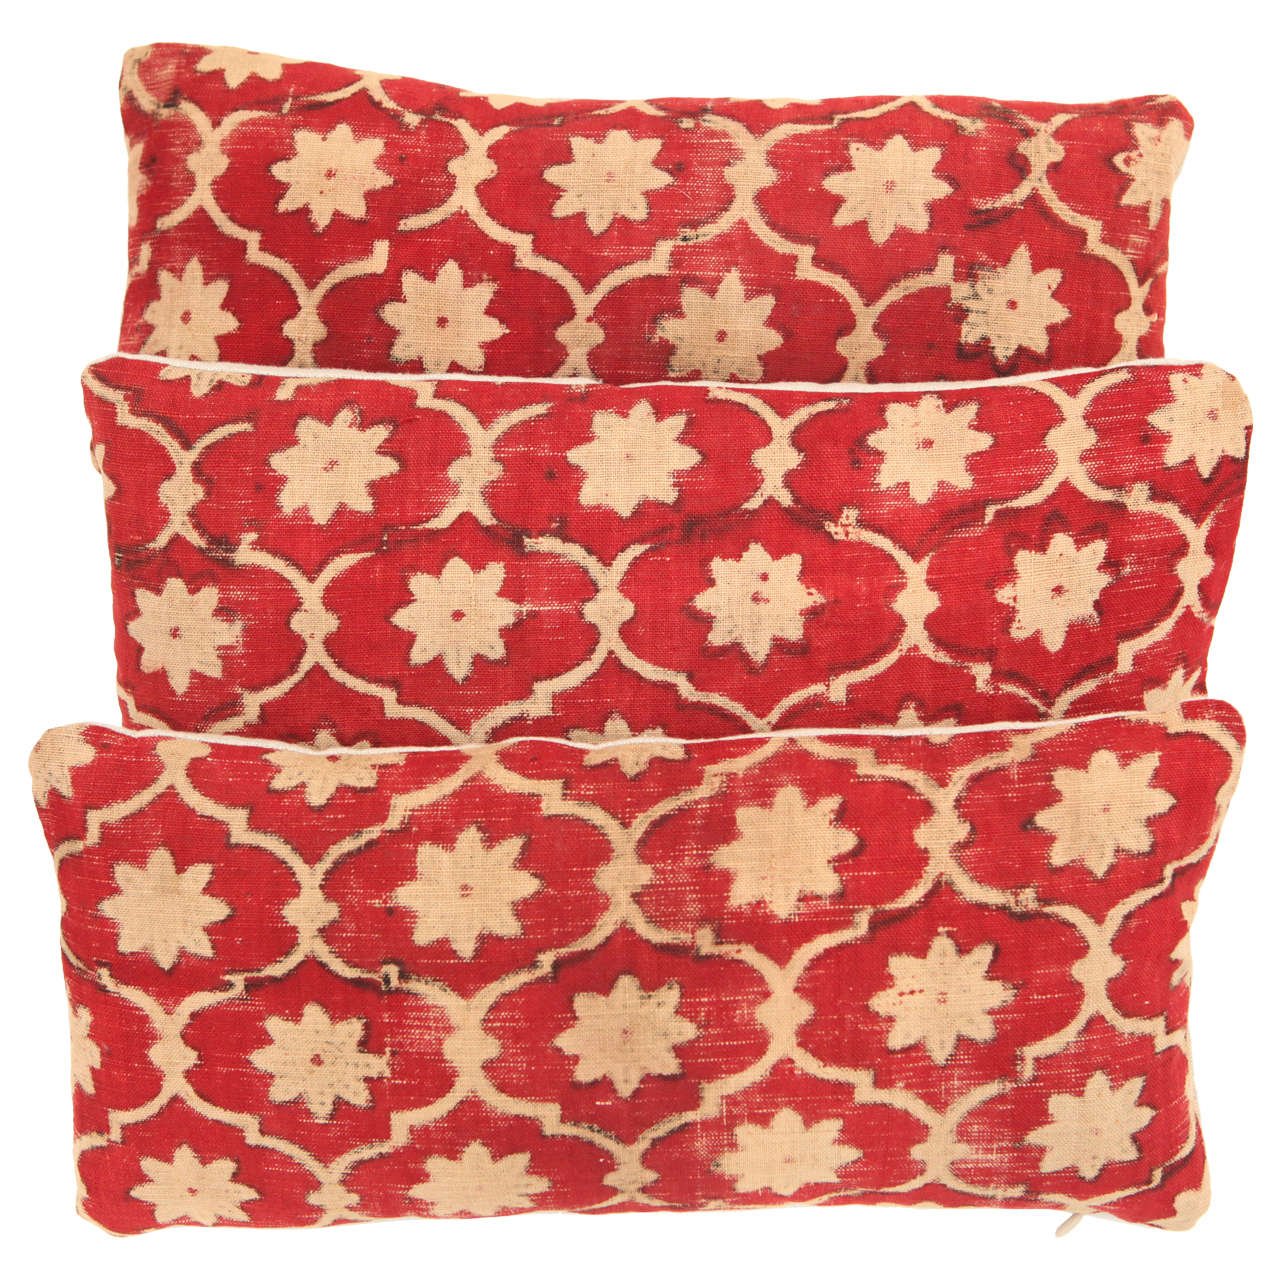 Antique Indian Kalamkari Fabric Lumbar Pillows